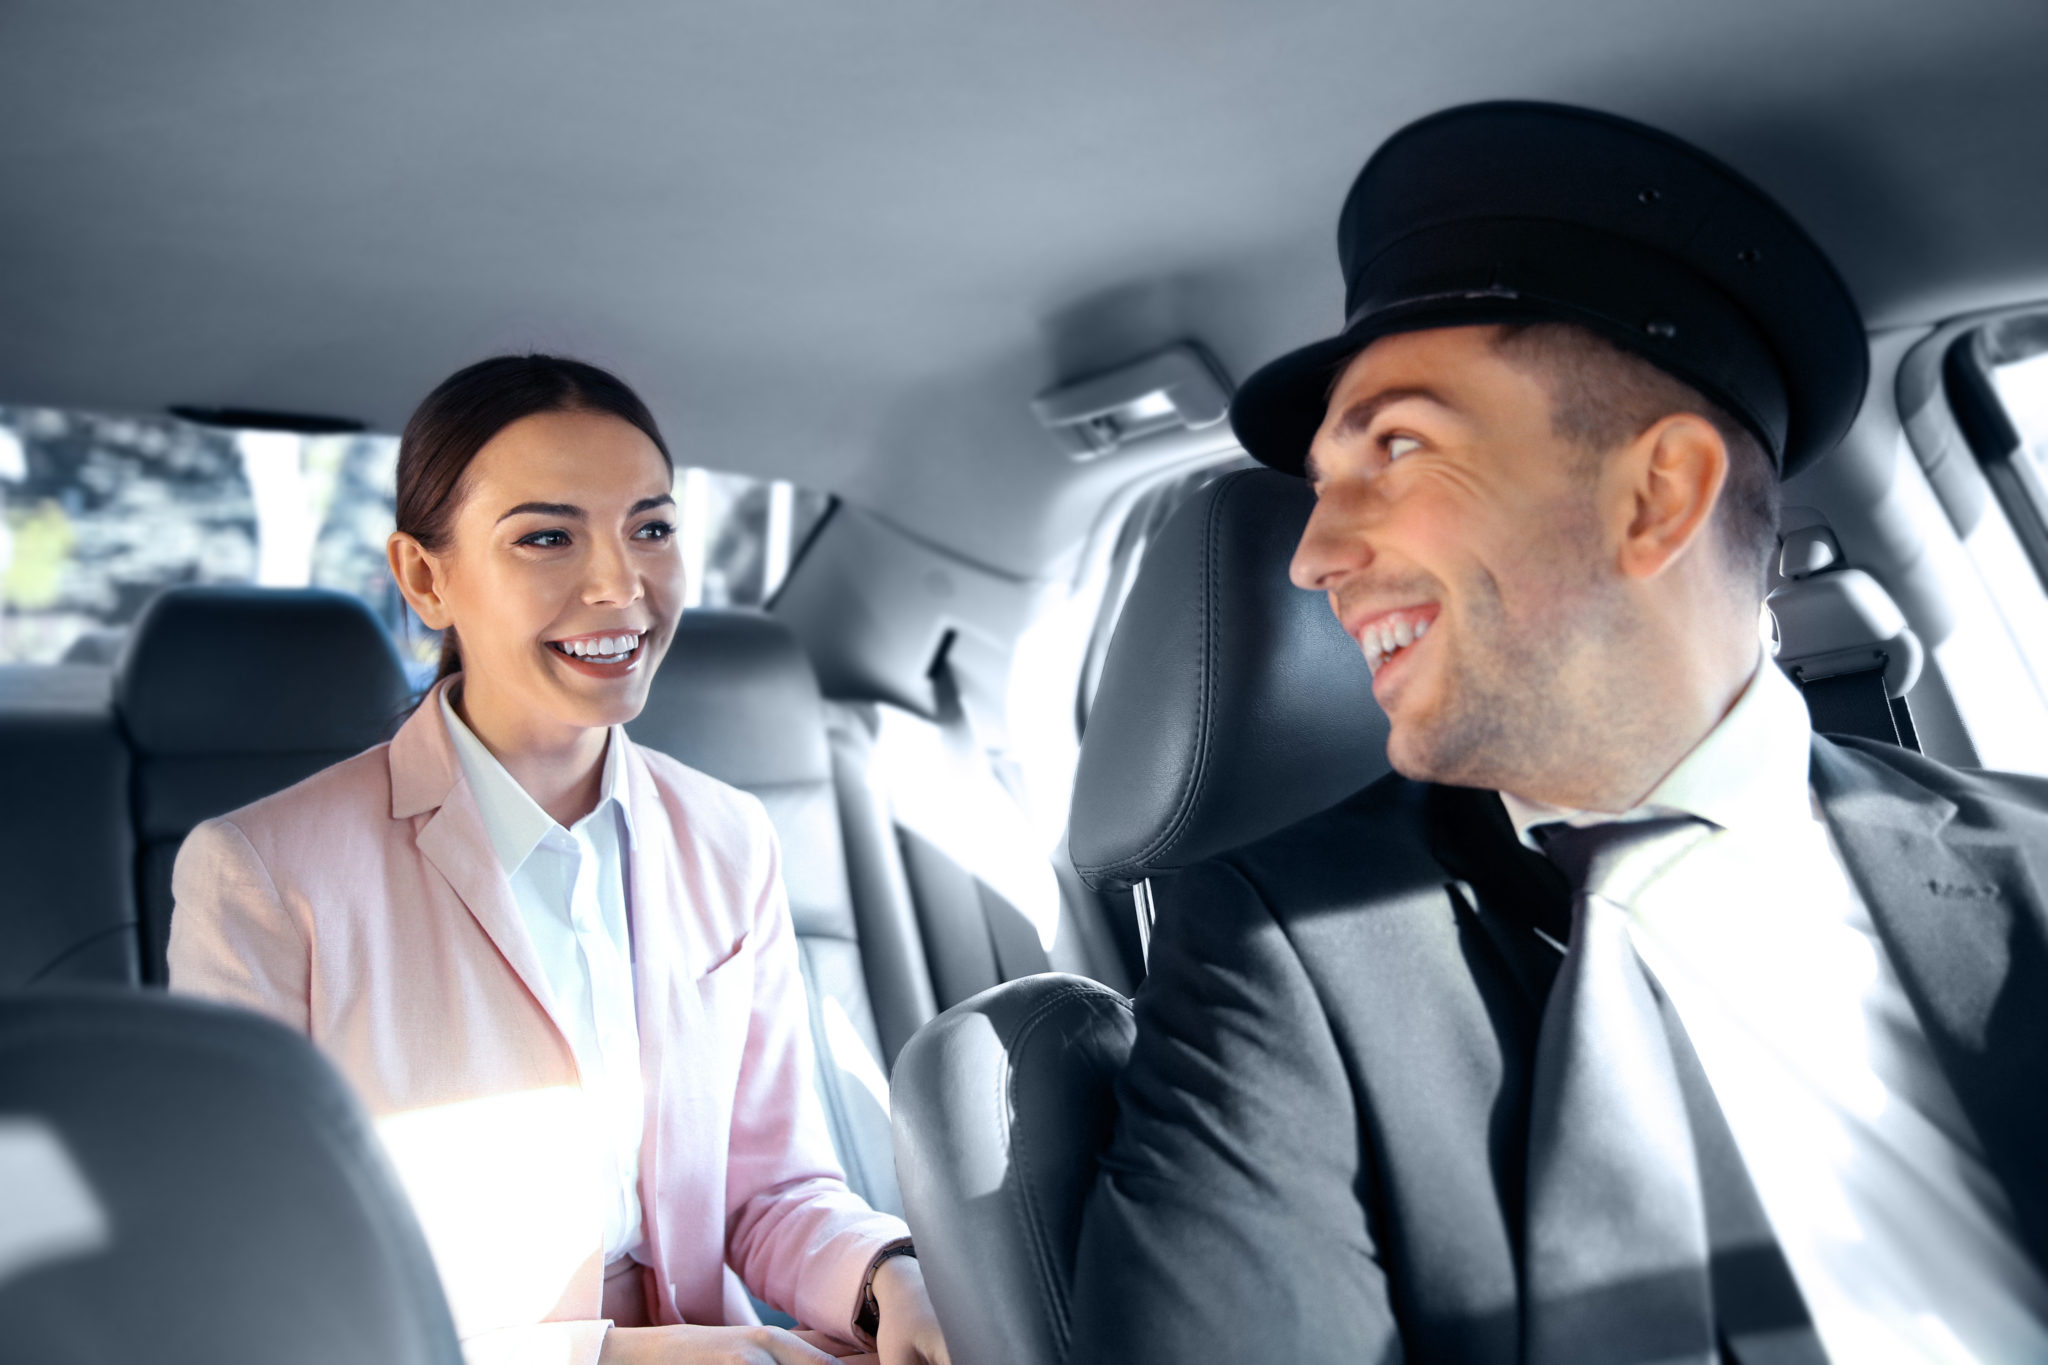 April 2017 Events In Los Angeles: Travel With A Private Car Service!